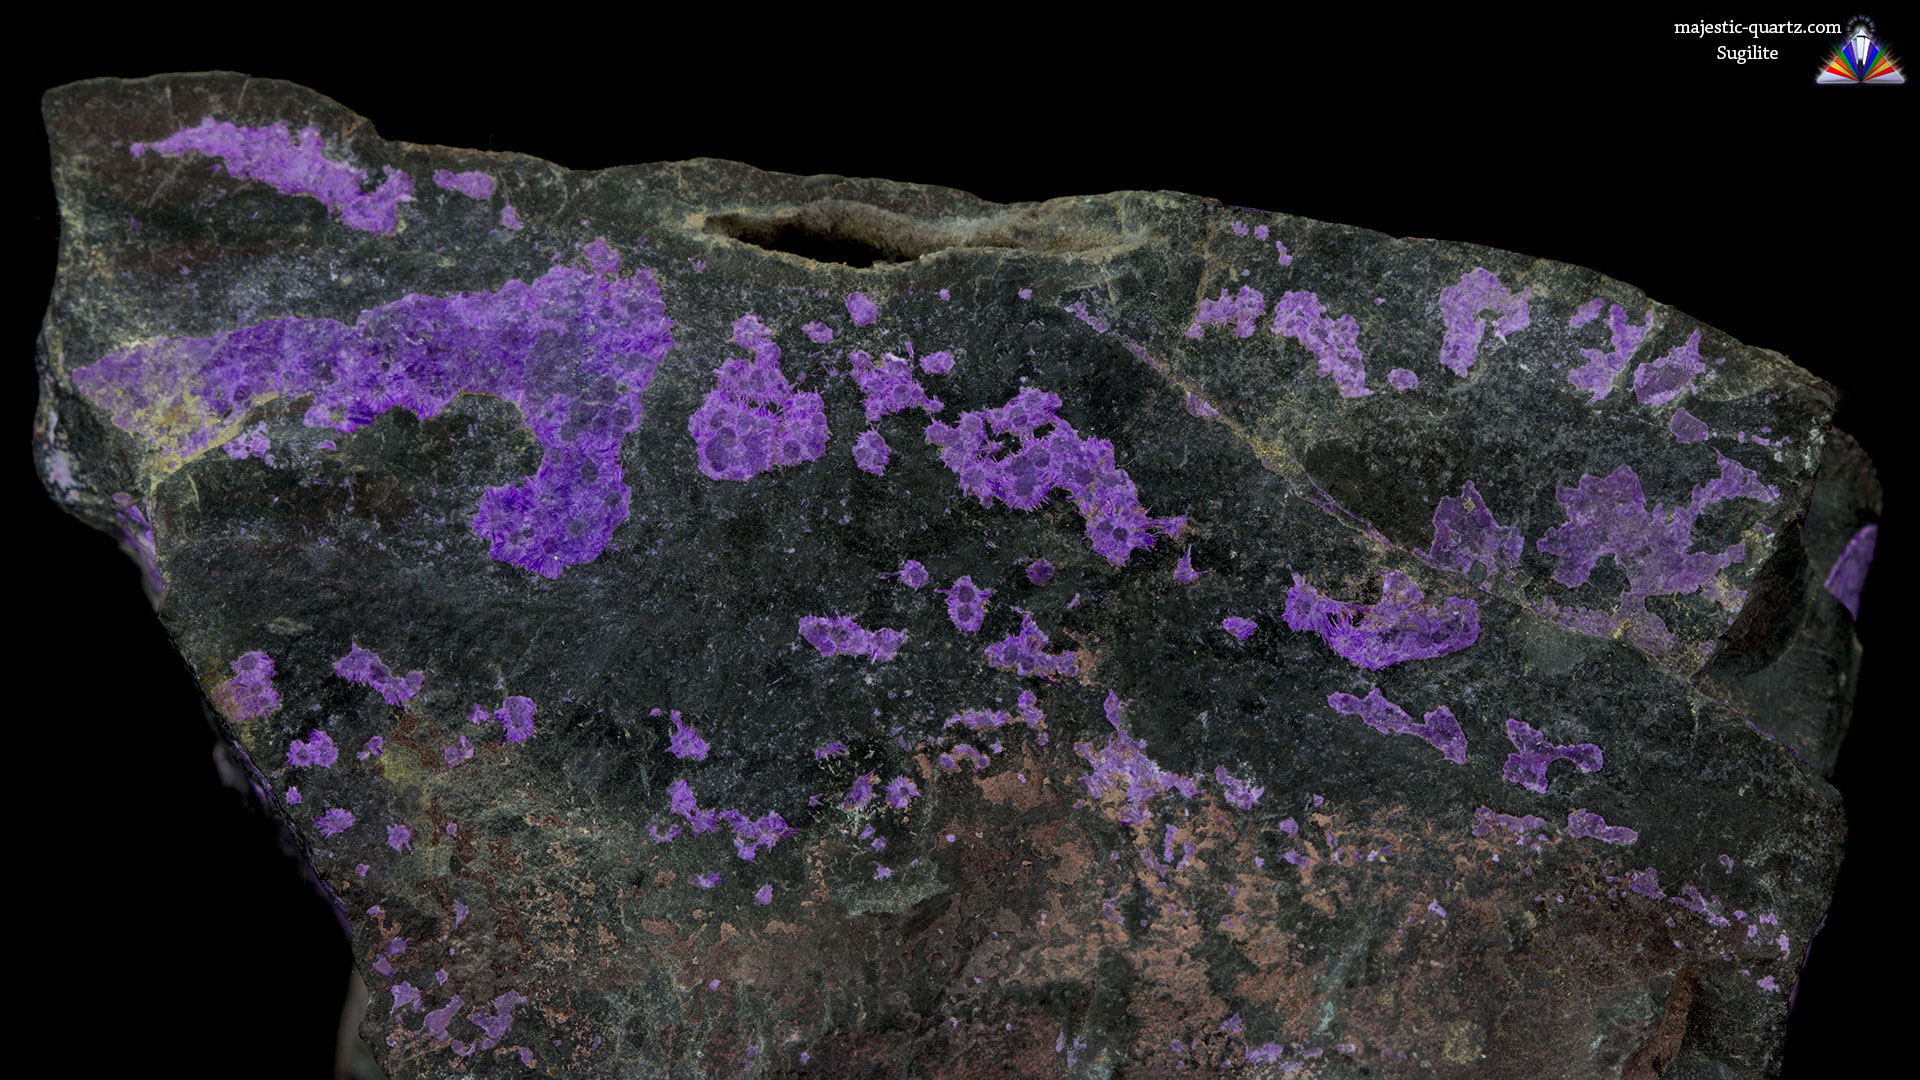 Sugilite properties and meaning photos crystal information - Sugilite Properties And Meaning Photos Crystal Information